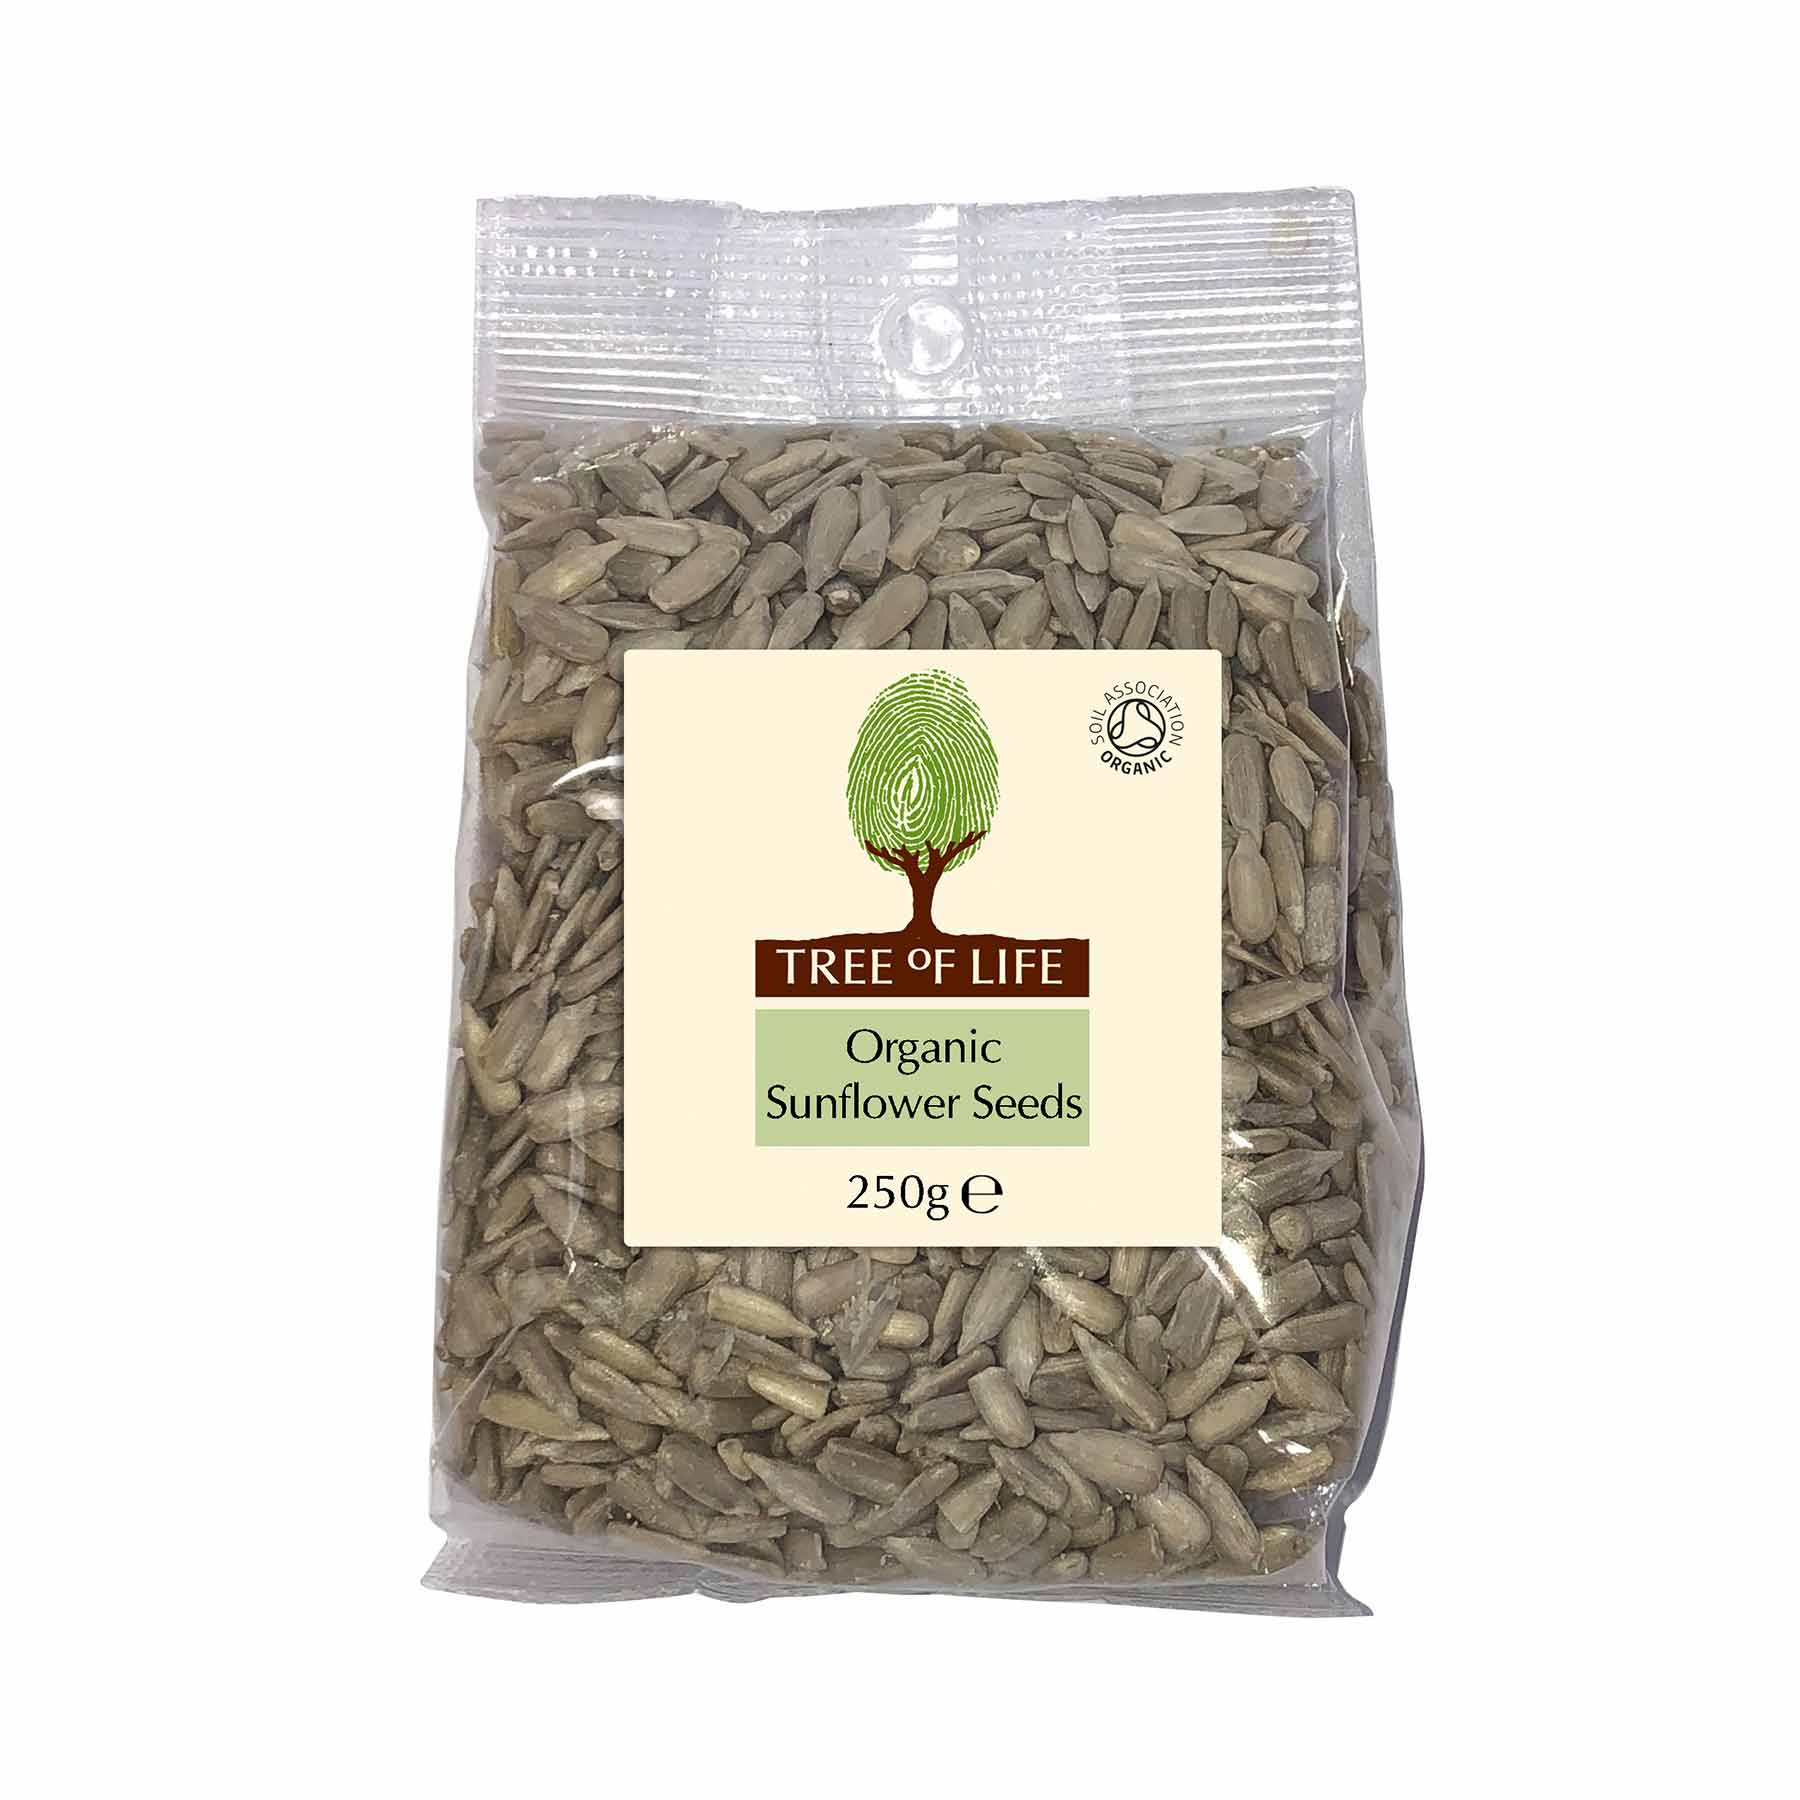 Packshot - Organic Sunflower Seeds by Tree of Life